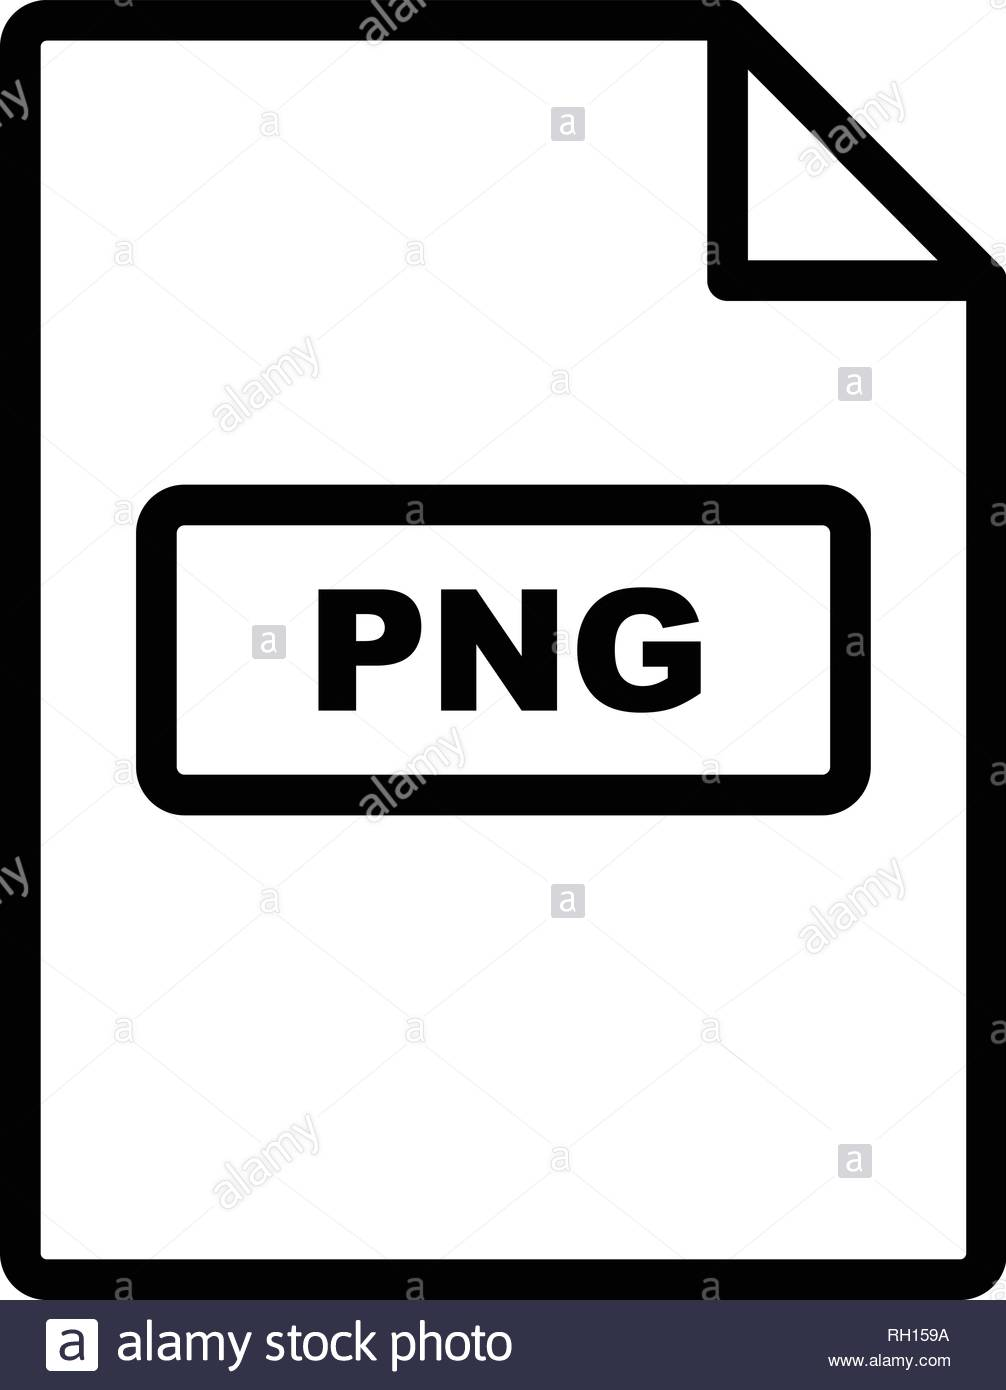 Png Vector Vectors Stock Photos & Png Vector Vectors Stock Images.